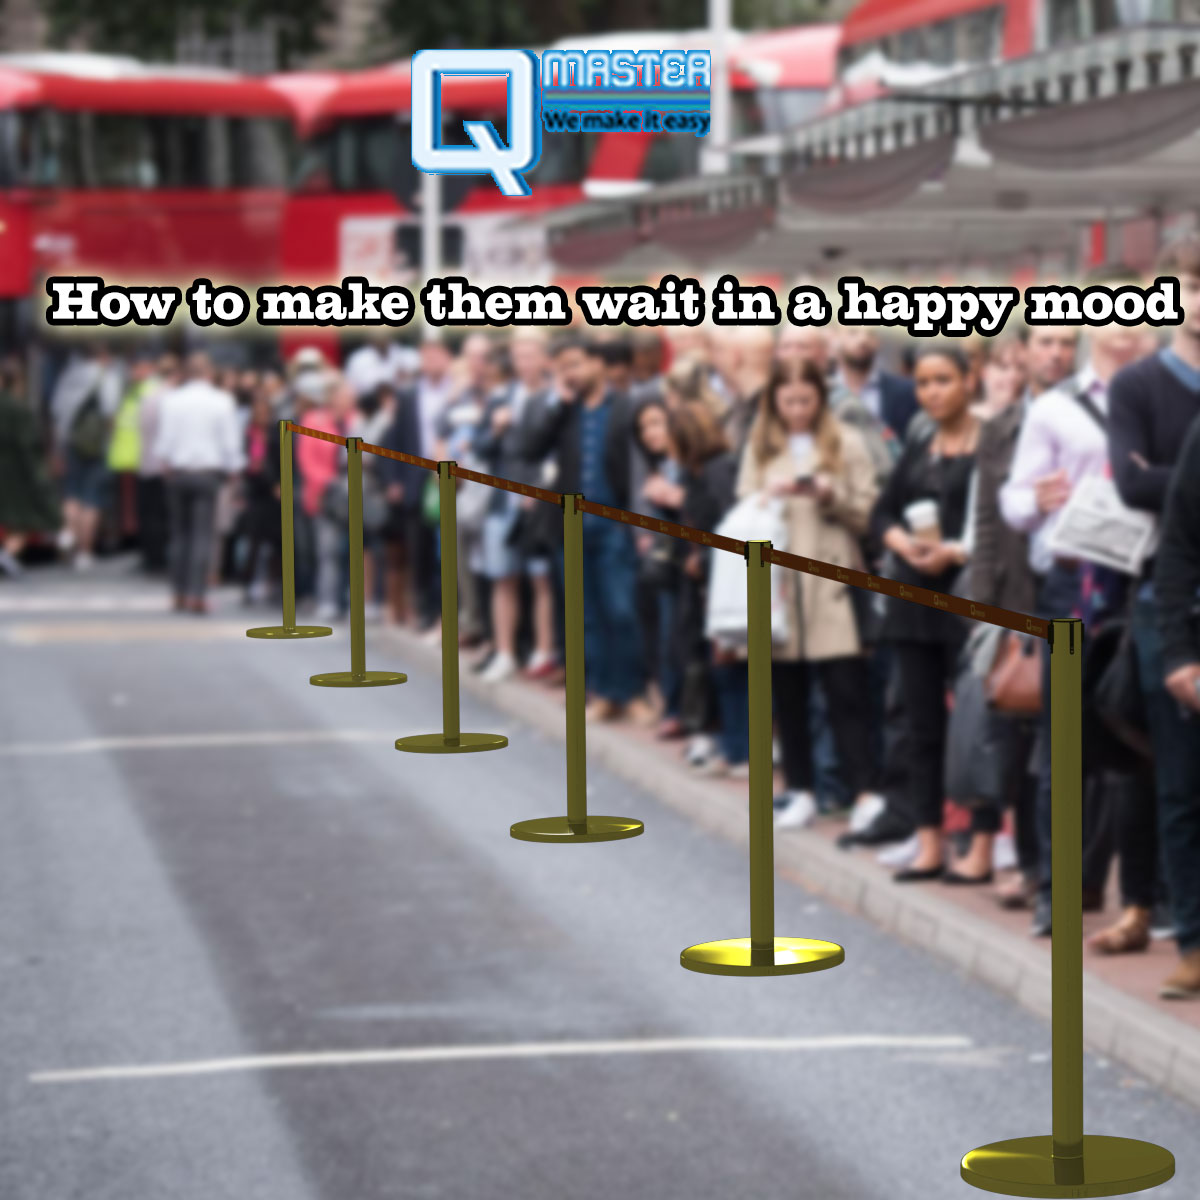 How to make them wait in a happy mood